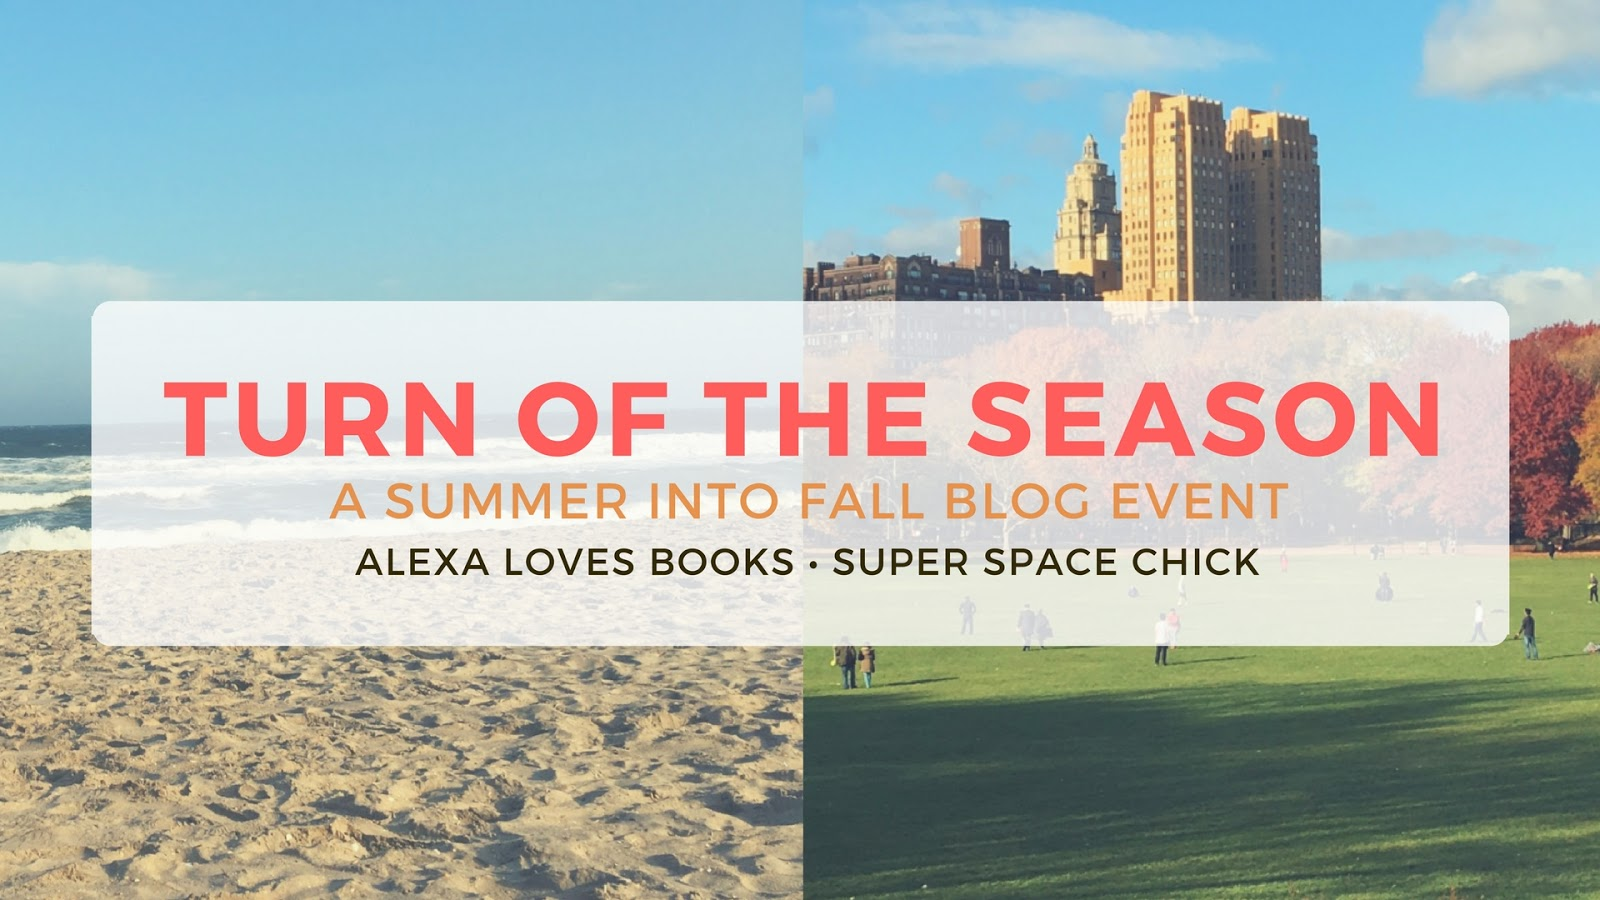 I Cannot Tell You Guys How Thrilled I Am To Collaborate With My Friend  Kristin Of Super Space Chick To Bring You Turn Of The Season, An Event That  ...